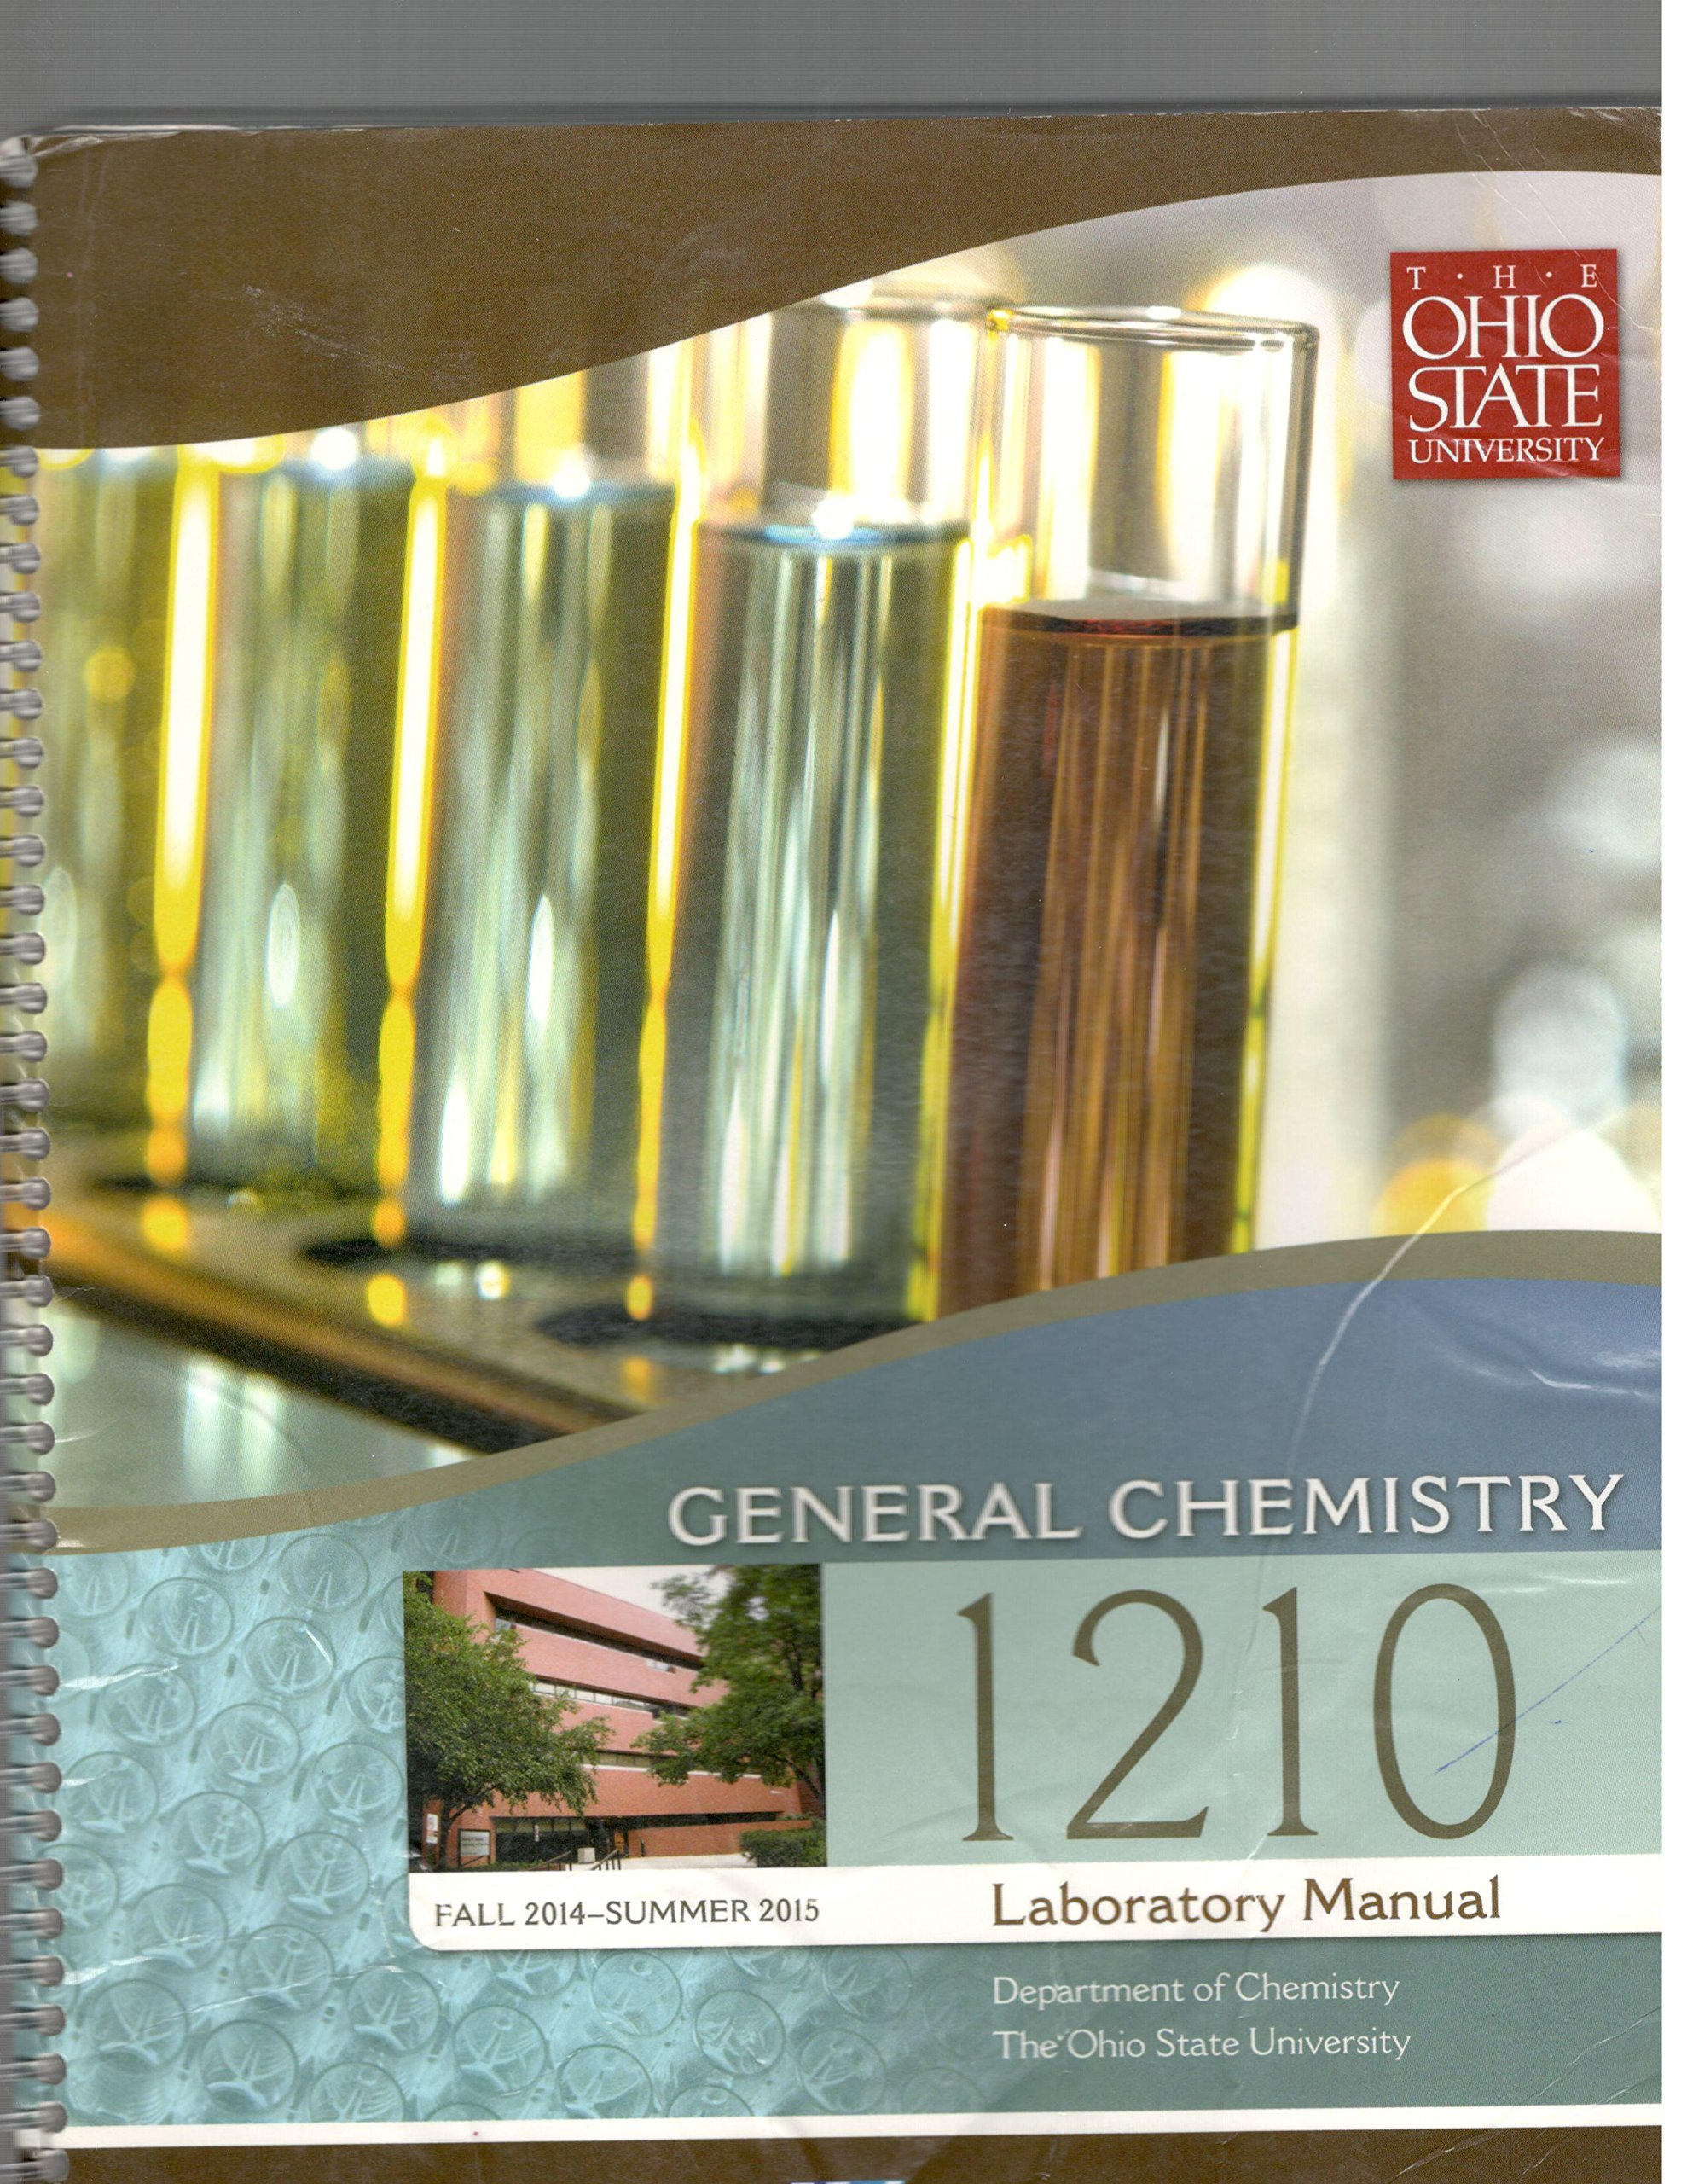 General Chemistry 1210 Laboratory Manual, The Ohio State University, Fall  2012-Summer 2013: N/A: 9780738050263: Amazon.com: Books